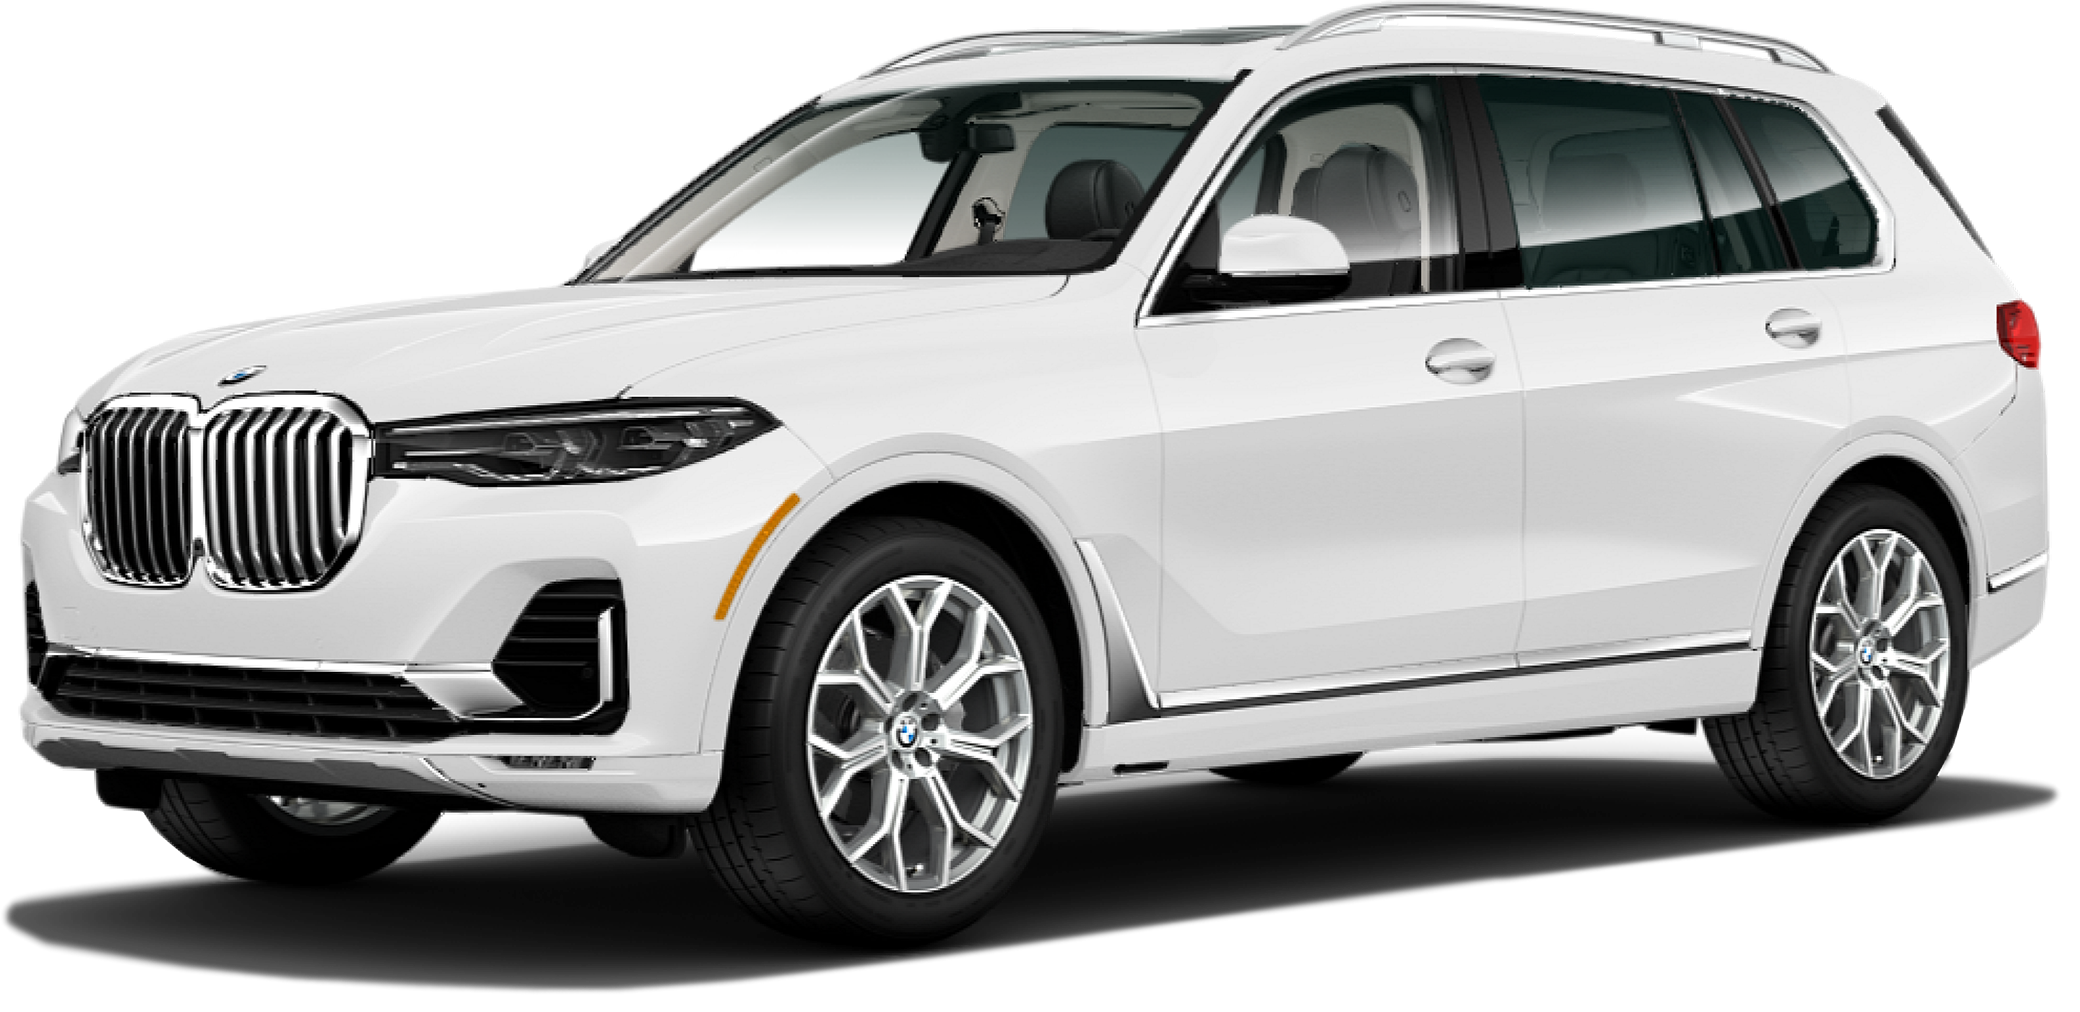 2020 BMW X7 Incentives, Specials & Offers in Honolulu HI